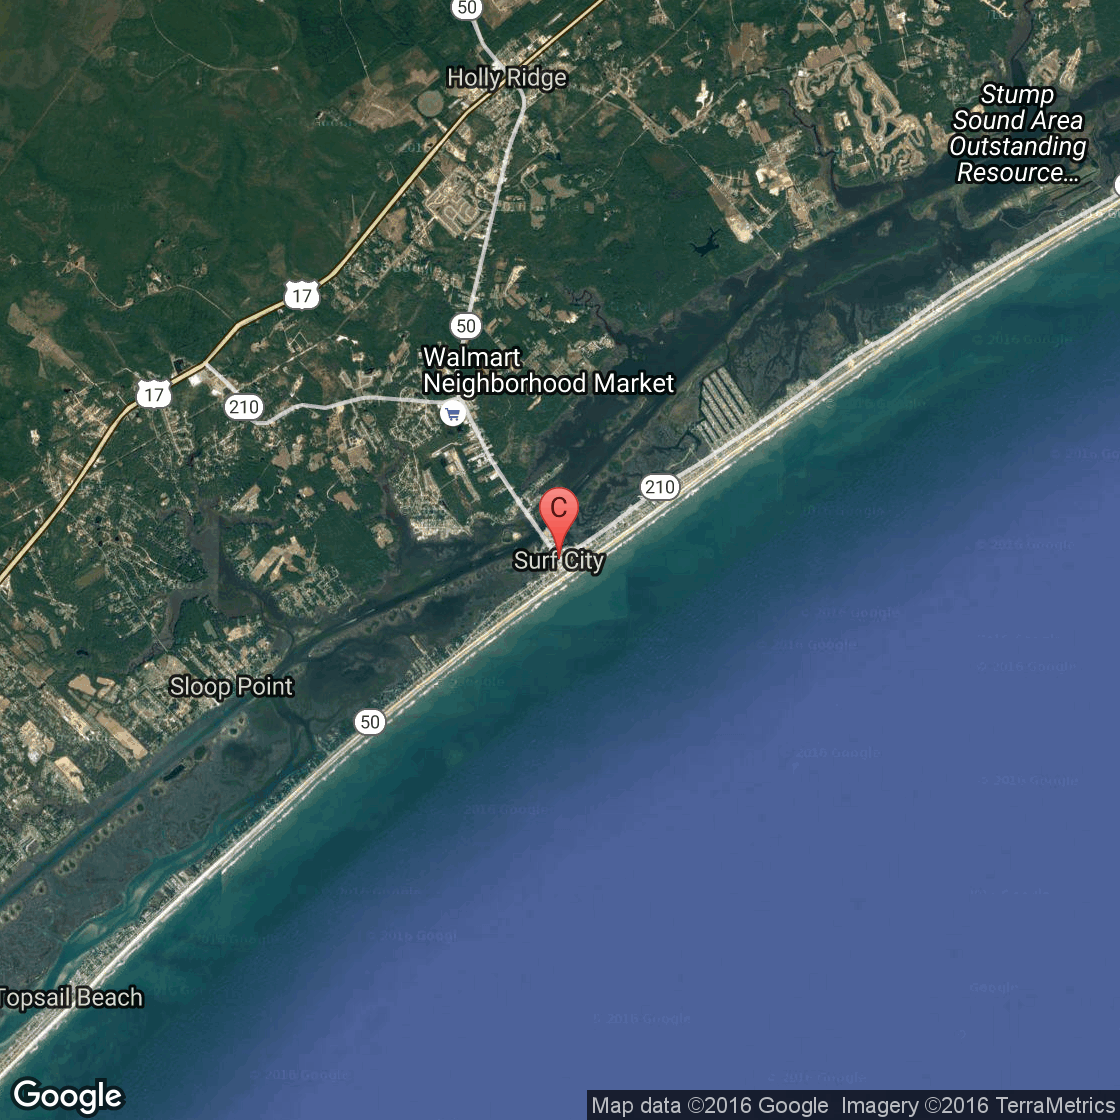 Bicycling in Surf City North Carolina on topsail island nc beach, map of topsail island nc, map of topsail island north carolina beaches, map of topsail nc area,